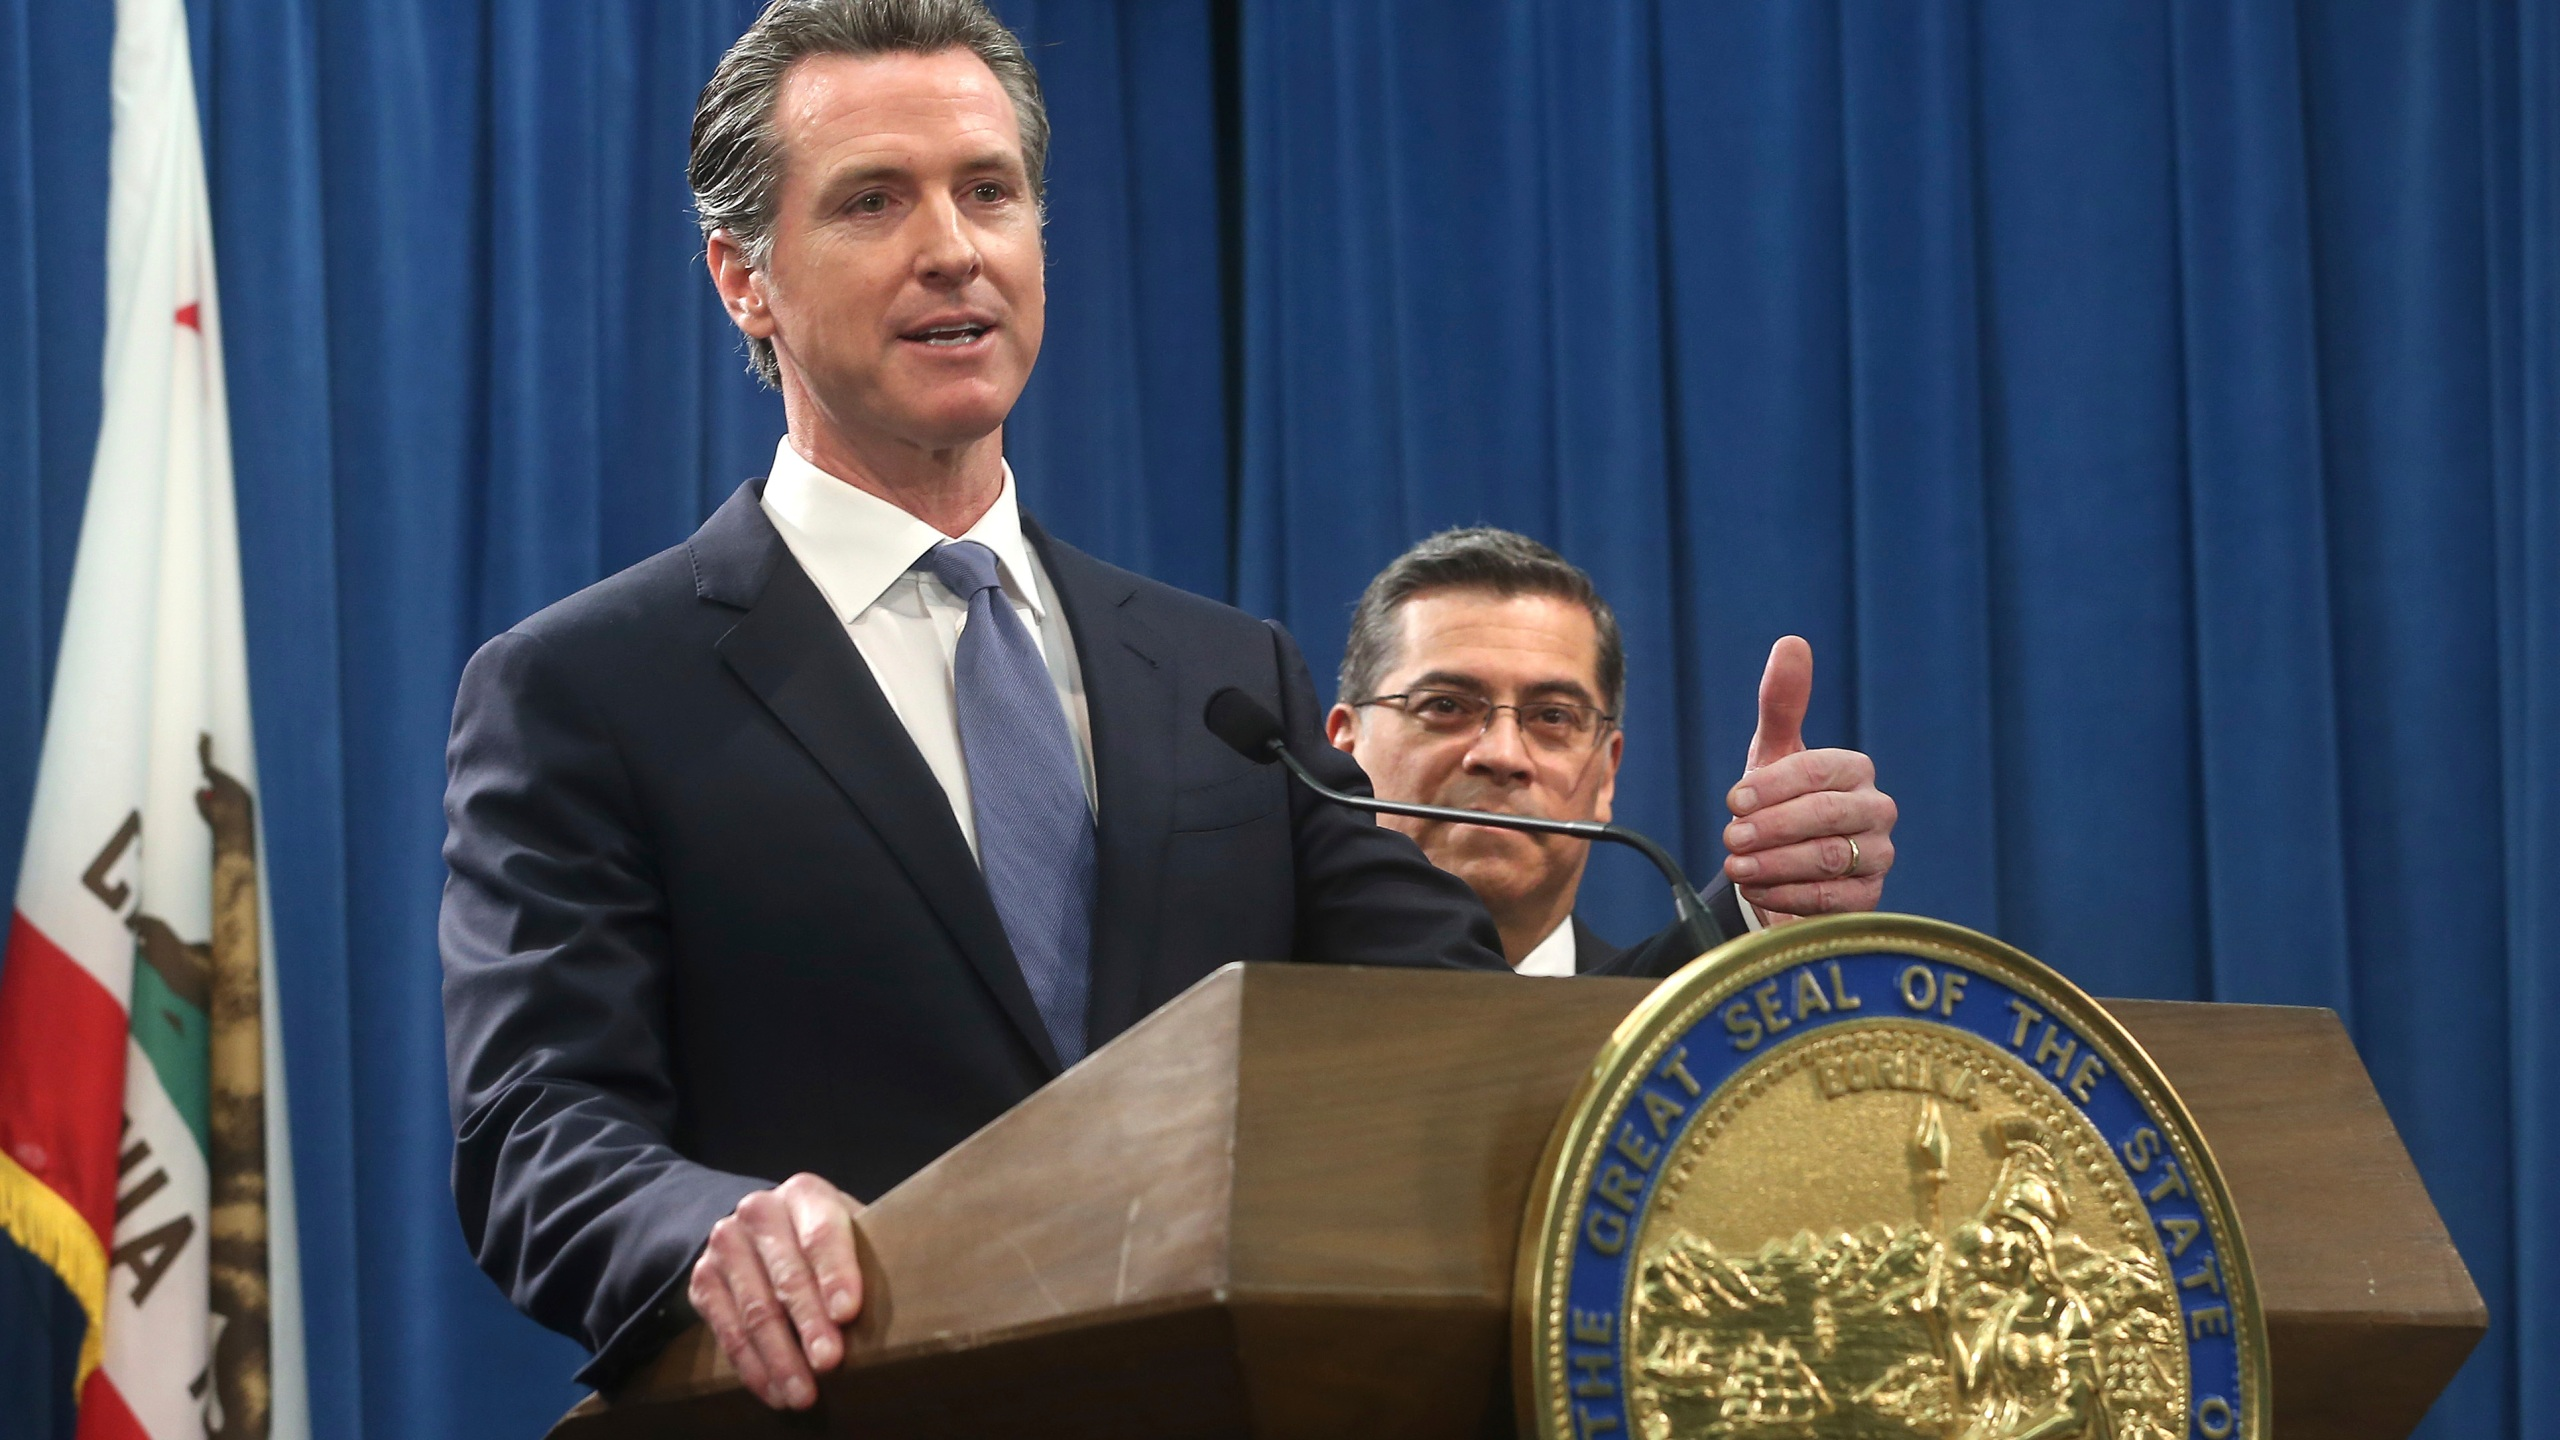 California Gov. Gavin Newsom, left, flanked by Attorney General Xavier Becerra, right, answers a question during a news conference in Sacramento on Feb. 15, 2019. (Rich Pedroncelli / Associated Press)